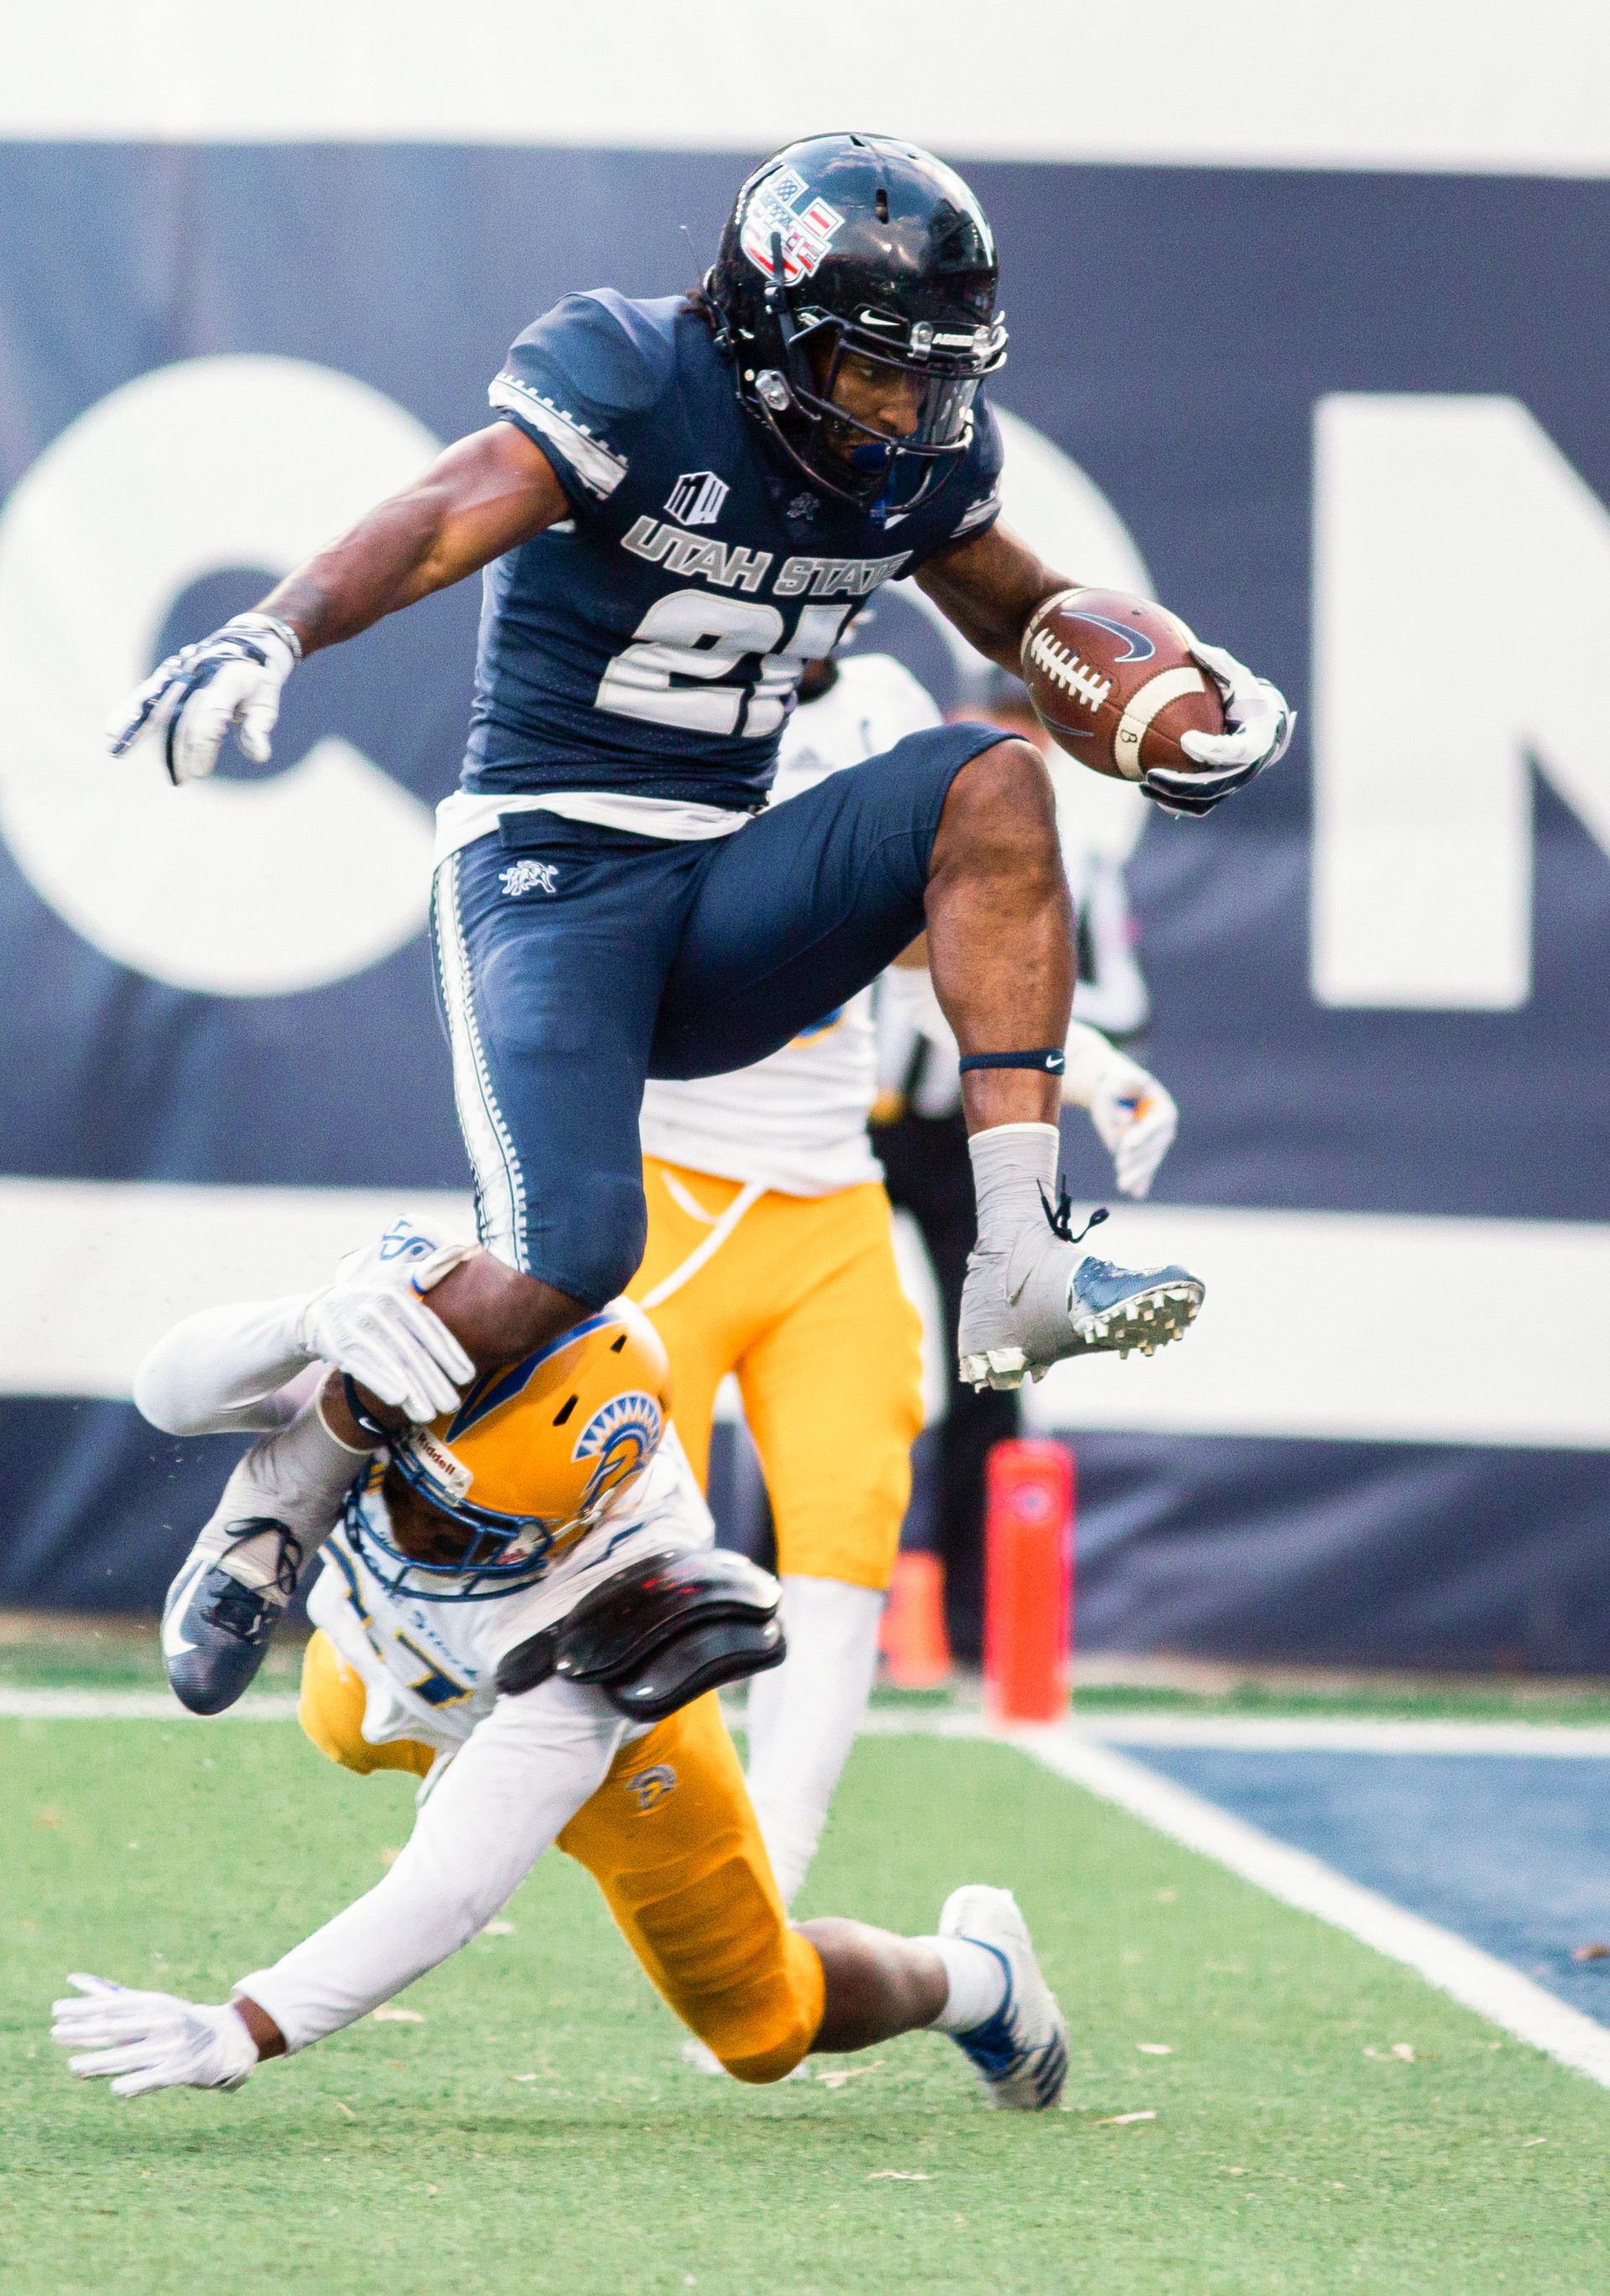 Utah State's Jalen Greene hurdles a San Jose player for a touchdown at the last home game of the season against San Jose State on Nov. 11, 2018 in Logan, Utah. Aggies went undefeated on their home turf with a 62-24 win against the Spartans.